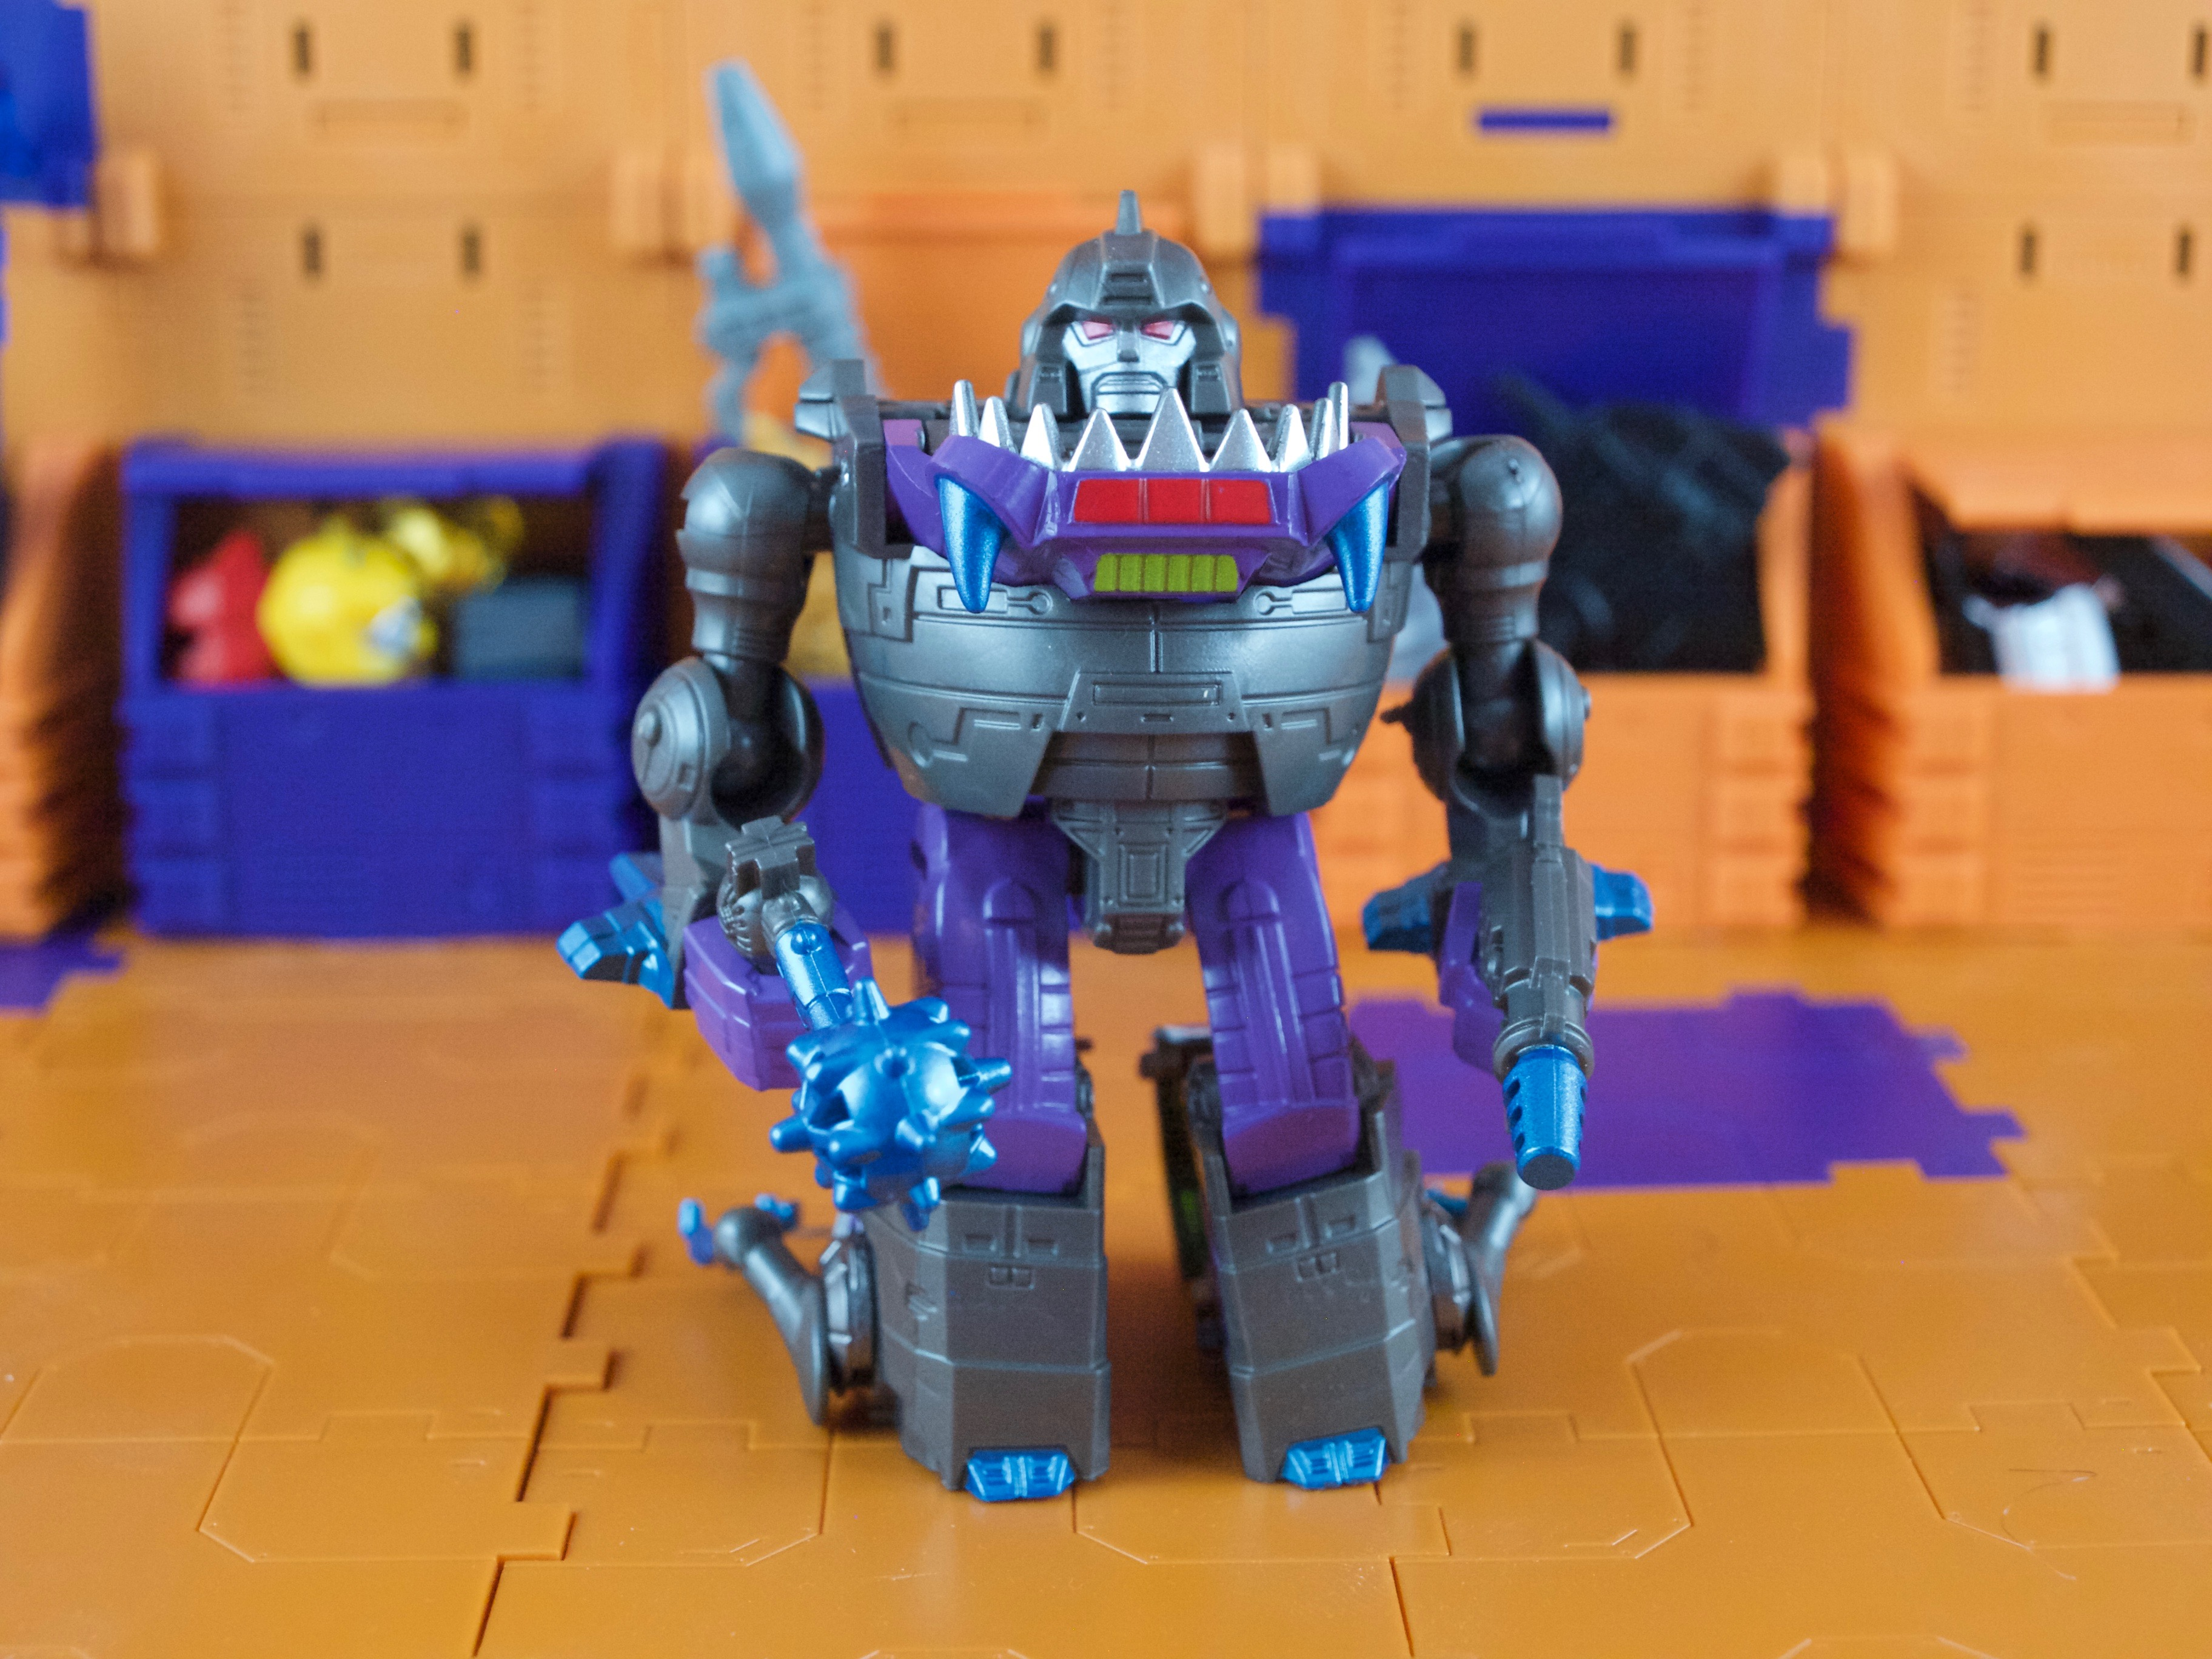 Sharktticons robot mode